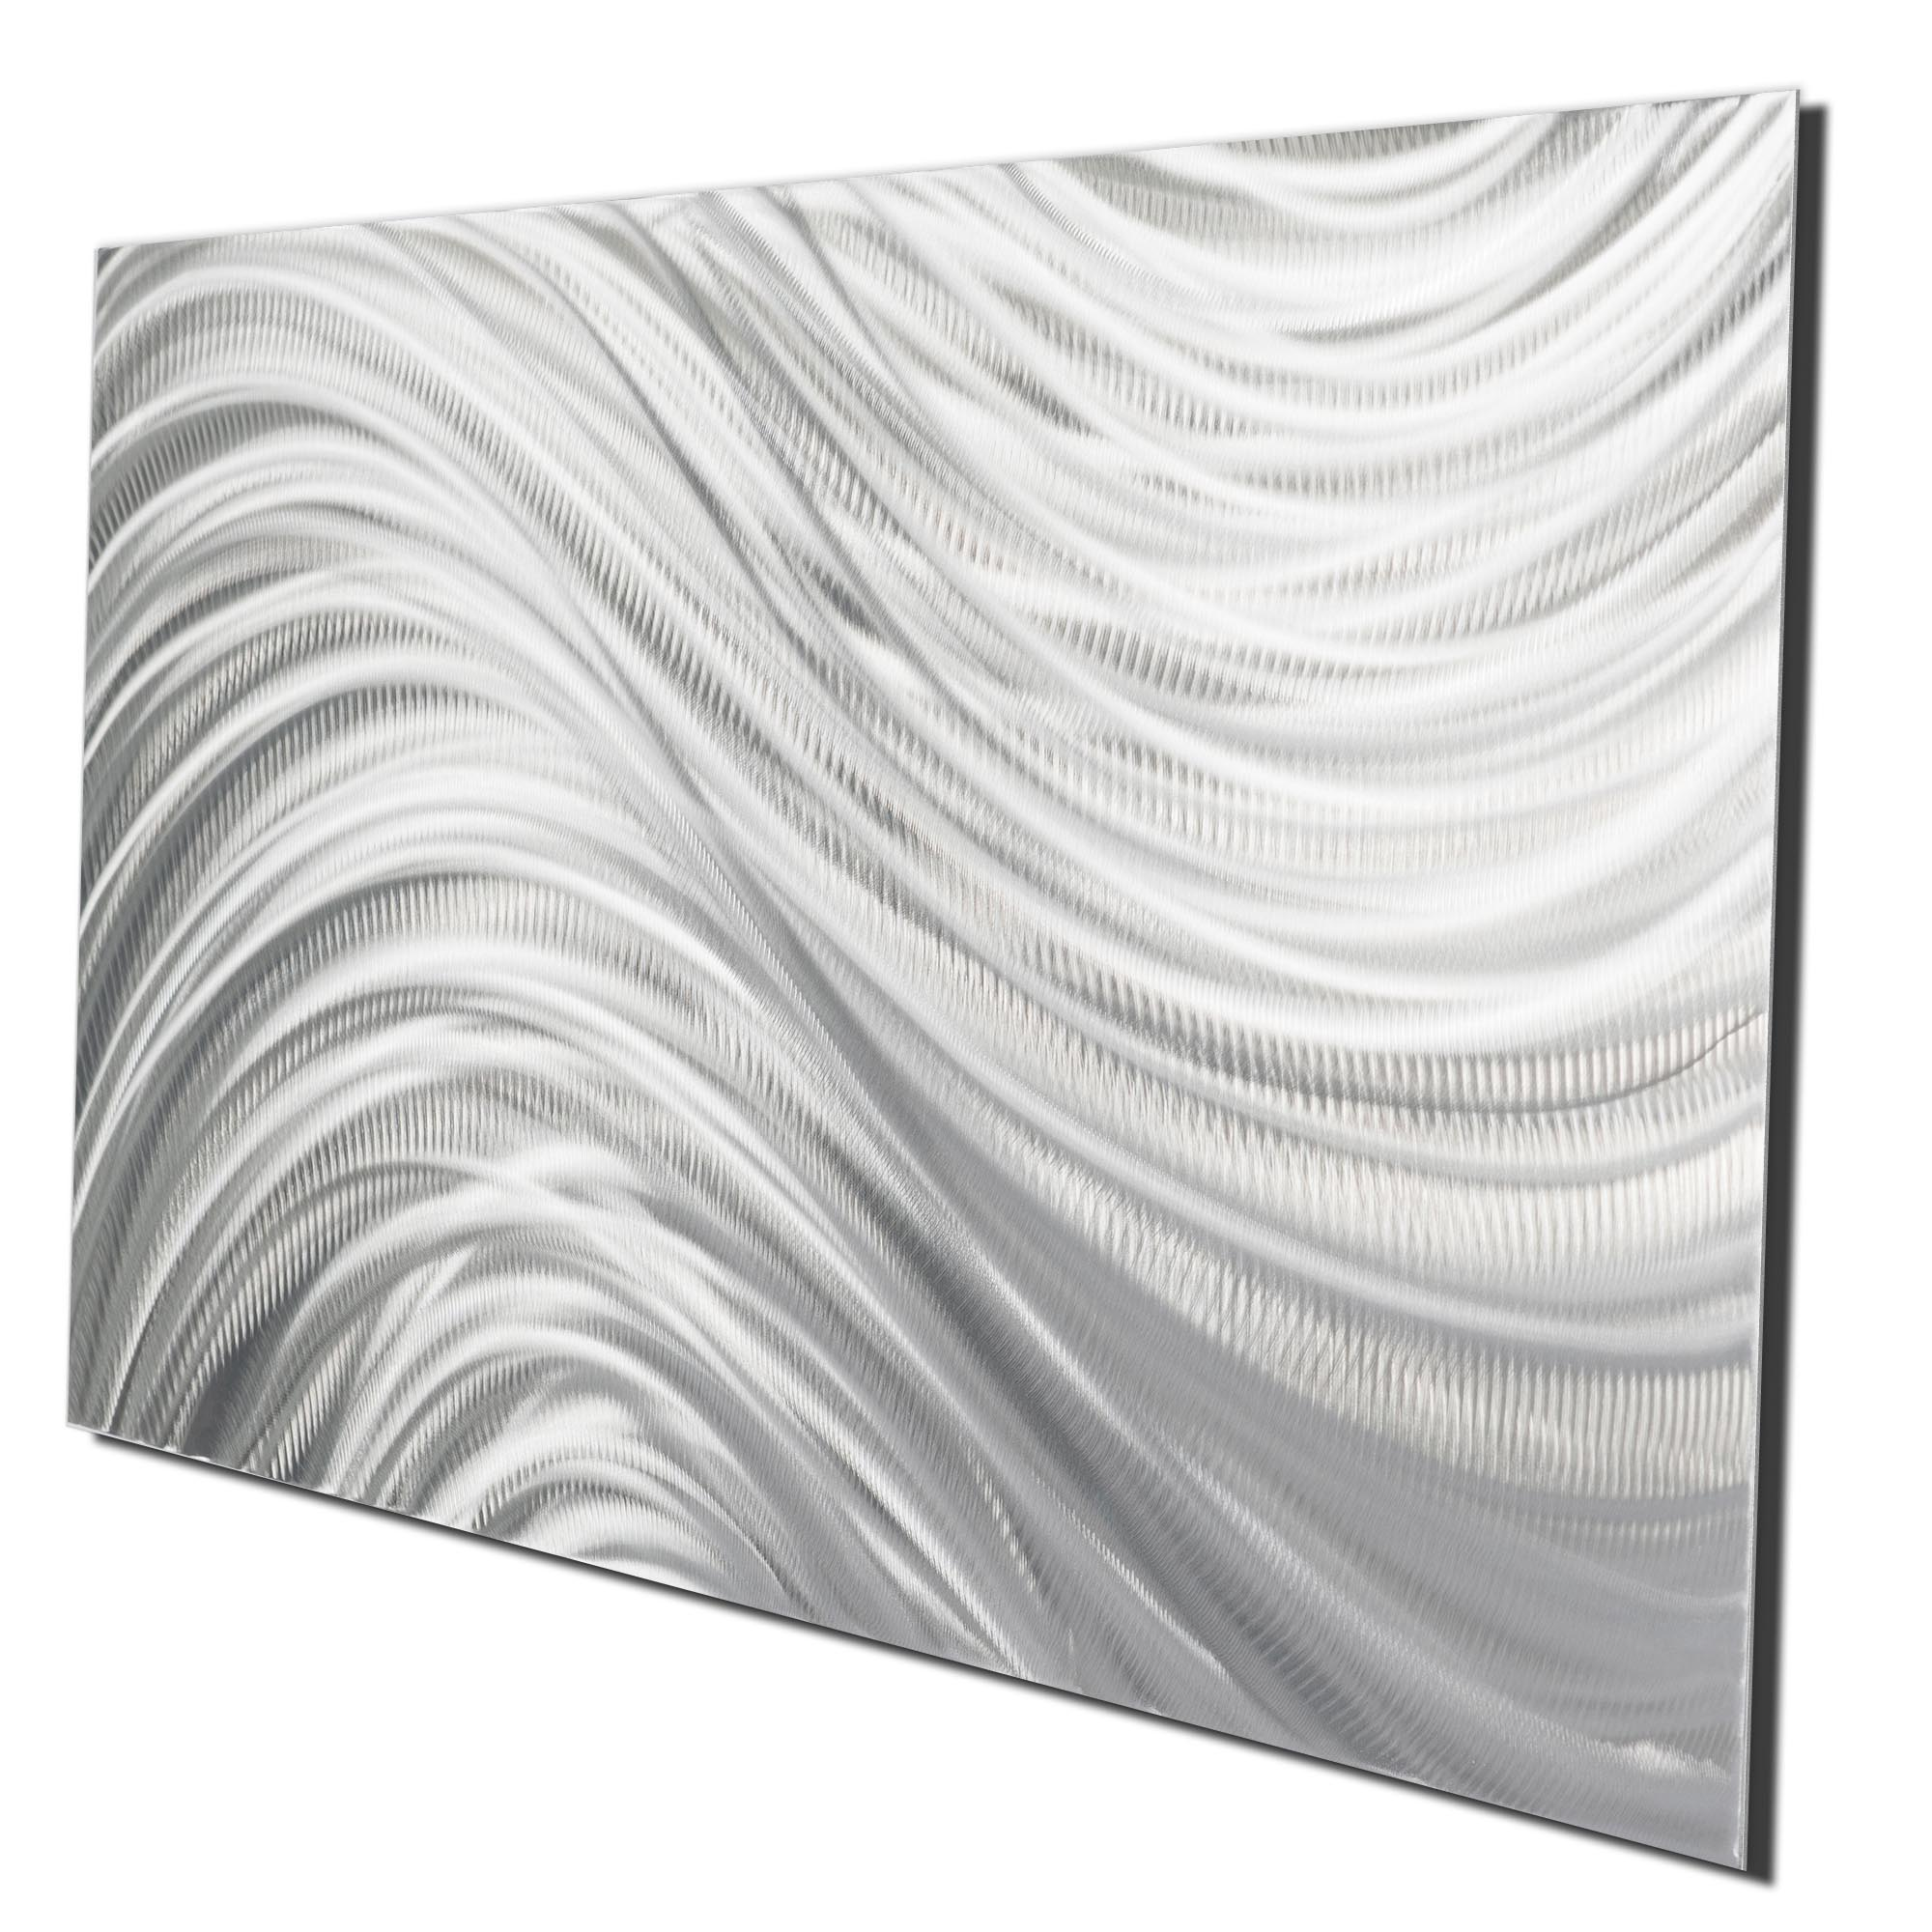 Silver Currents by Helena Martin - Original Abstract Metal Art on Ground Metal - Image 2